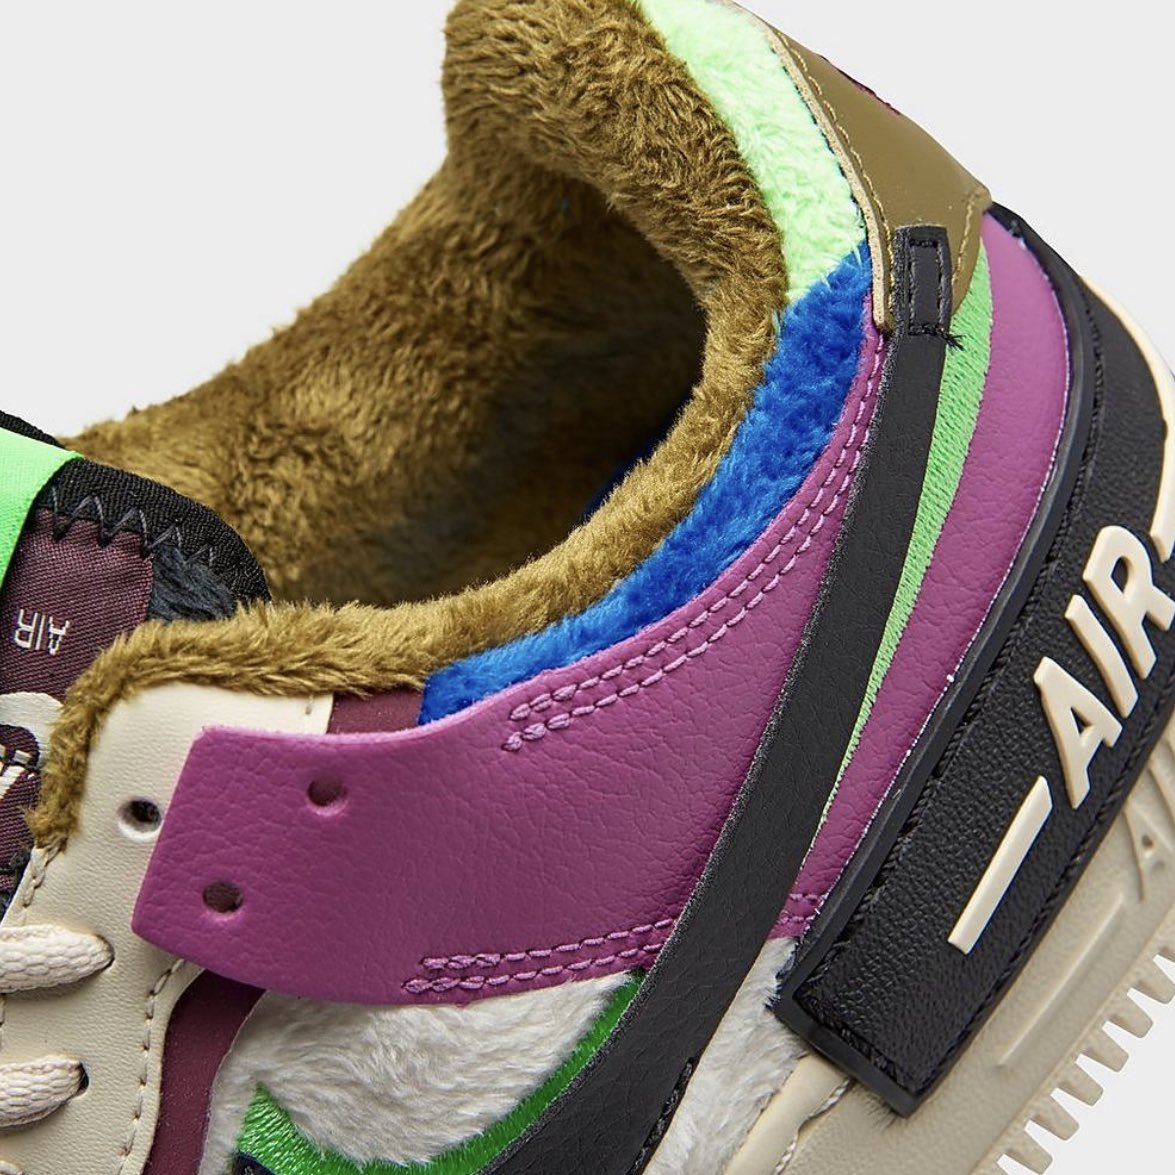 Snkr Twitr On Twitter New Wmns Nike Air Force 1 Shadow Se Cactus Flower Olive Flak Finishline Https T Co 0byfleocri Jdsports Https T Co Ndko8hw4jl Ad Https T Co Sjbocqi8h5 ⚫ 2020 limitata nike air force 1'07 ® (uomini taglia uk 7.5 eur 42) medium olive. wmns nike air force 1 shadow se cactus